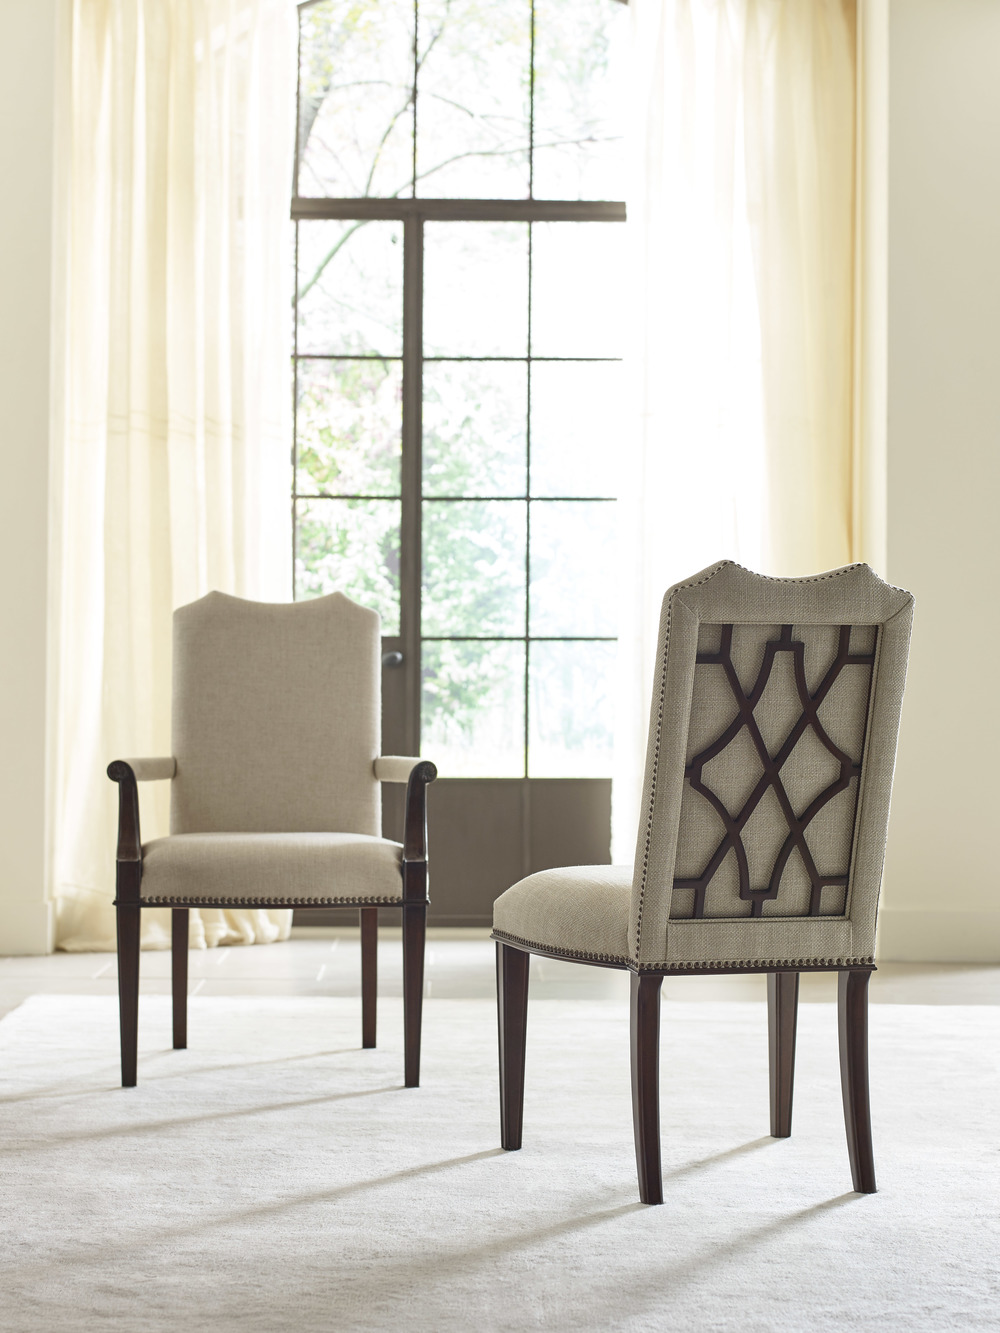 KINCAID FURNITURE CO, INC - Upholstered Side Chair